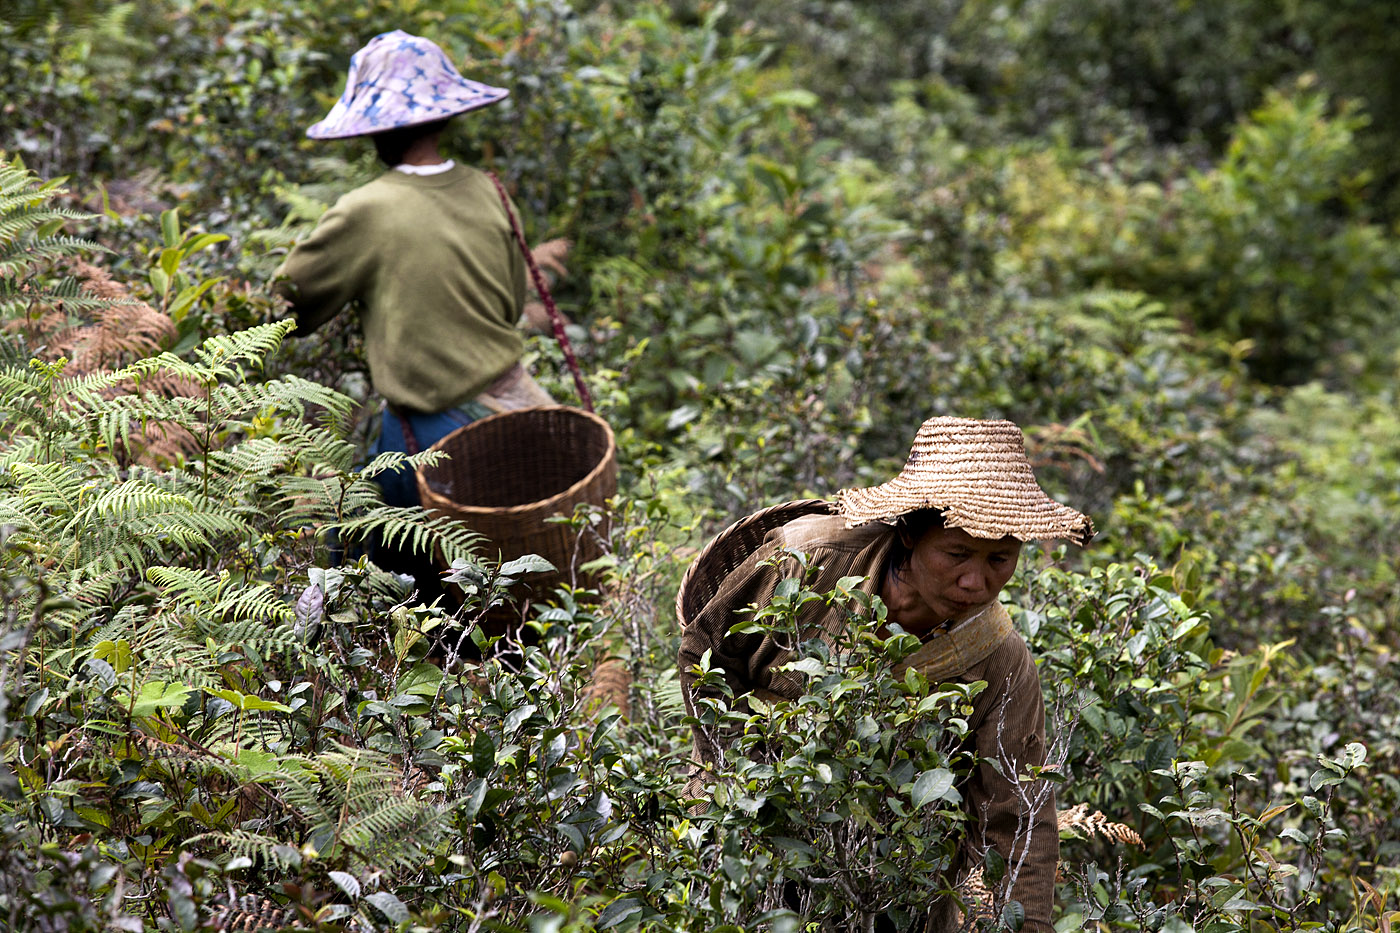 Palaung women harvest tea leaves outside Namshan.